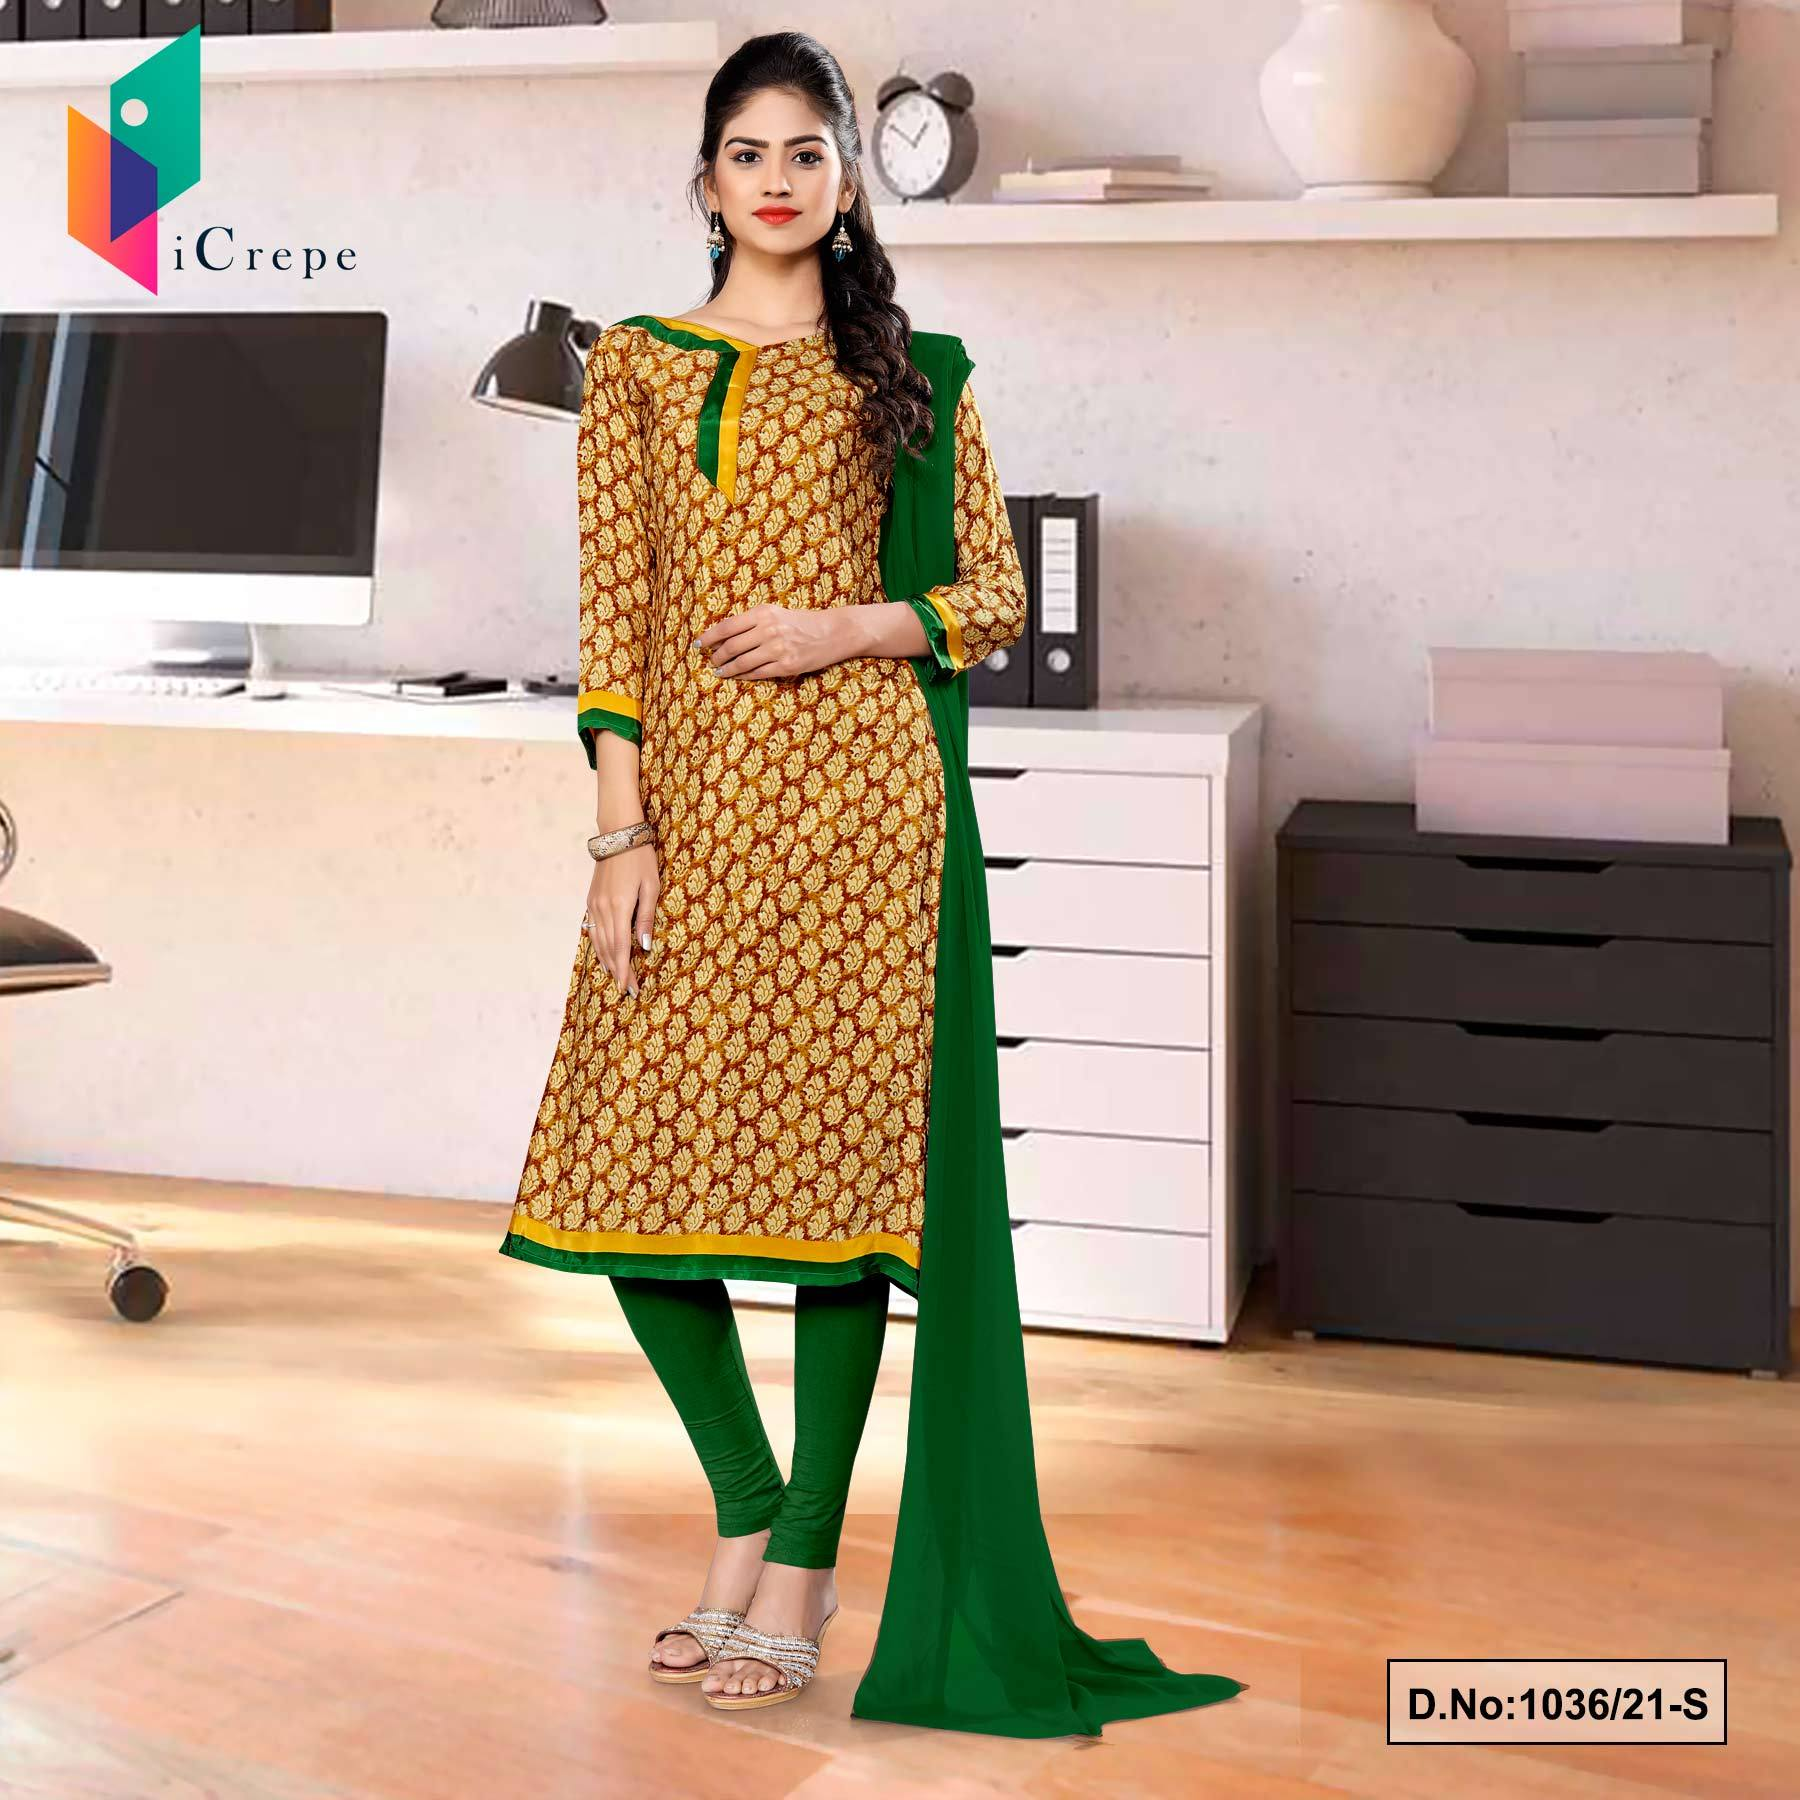 Brown Bottle Green Premium Italian Silk Crepe Salwar Kameez for Annual Function Uniform Sarees